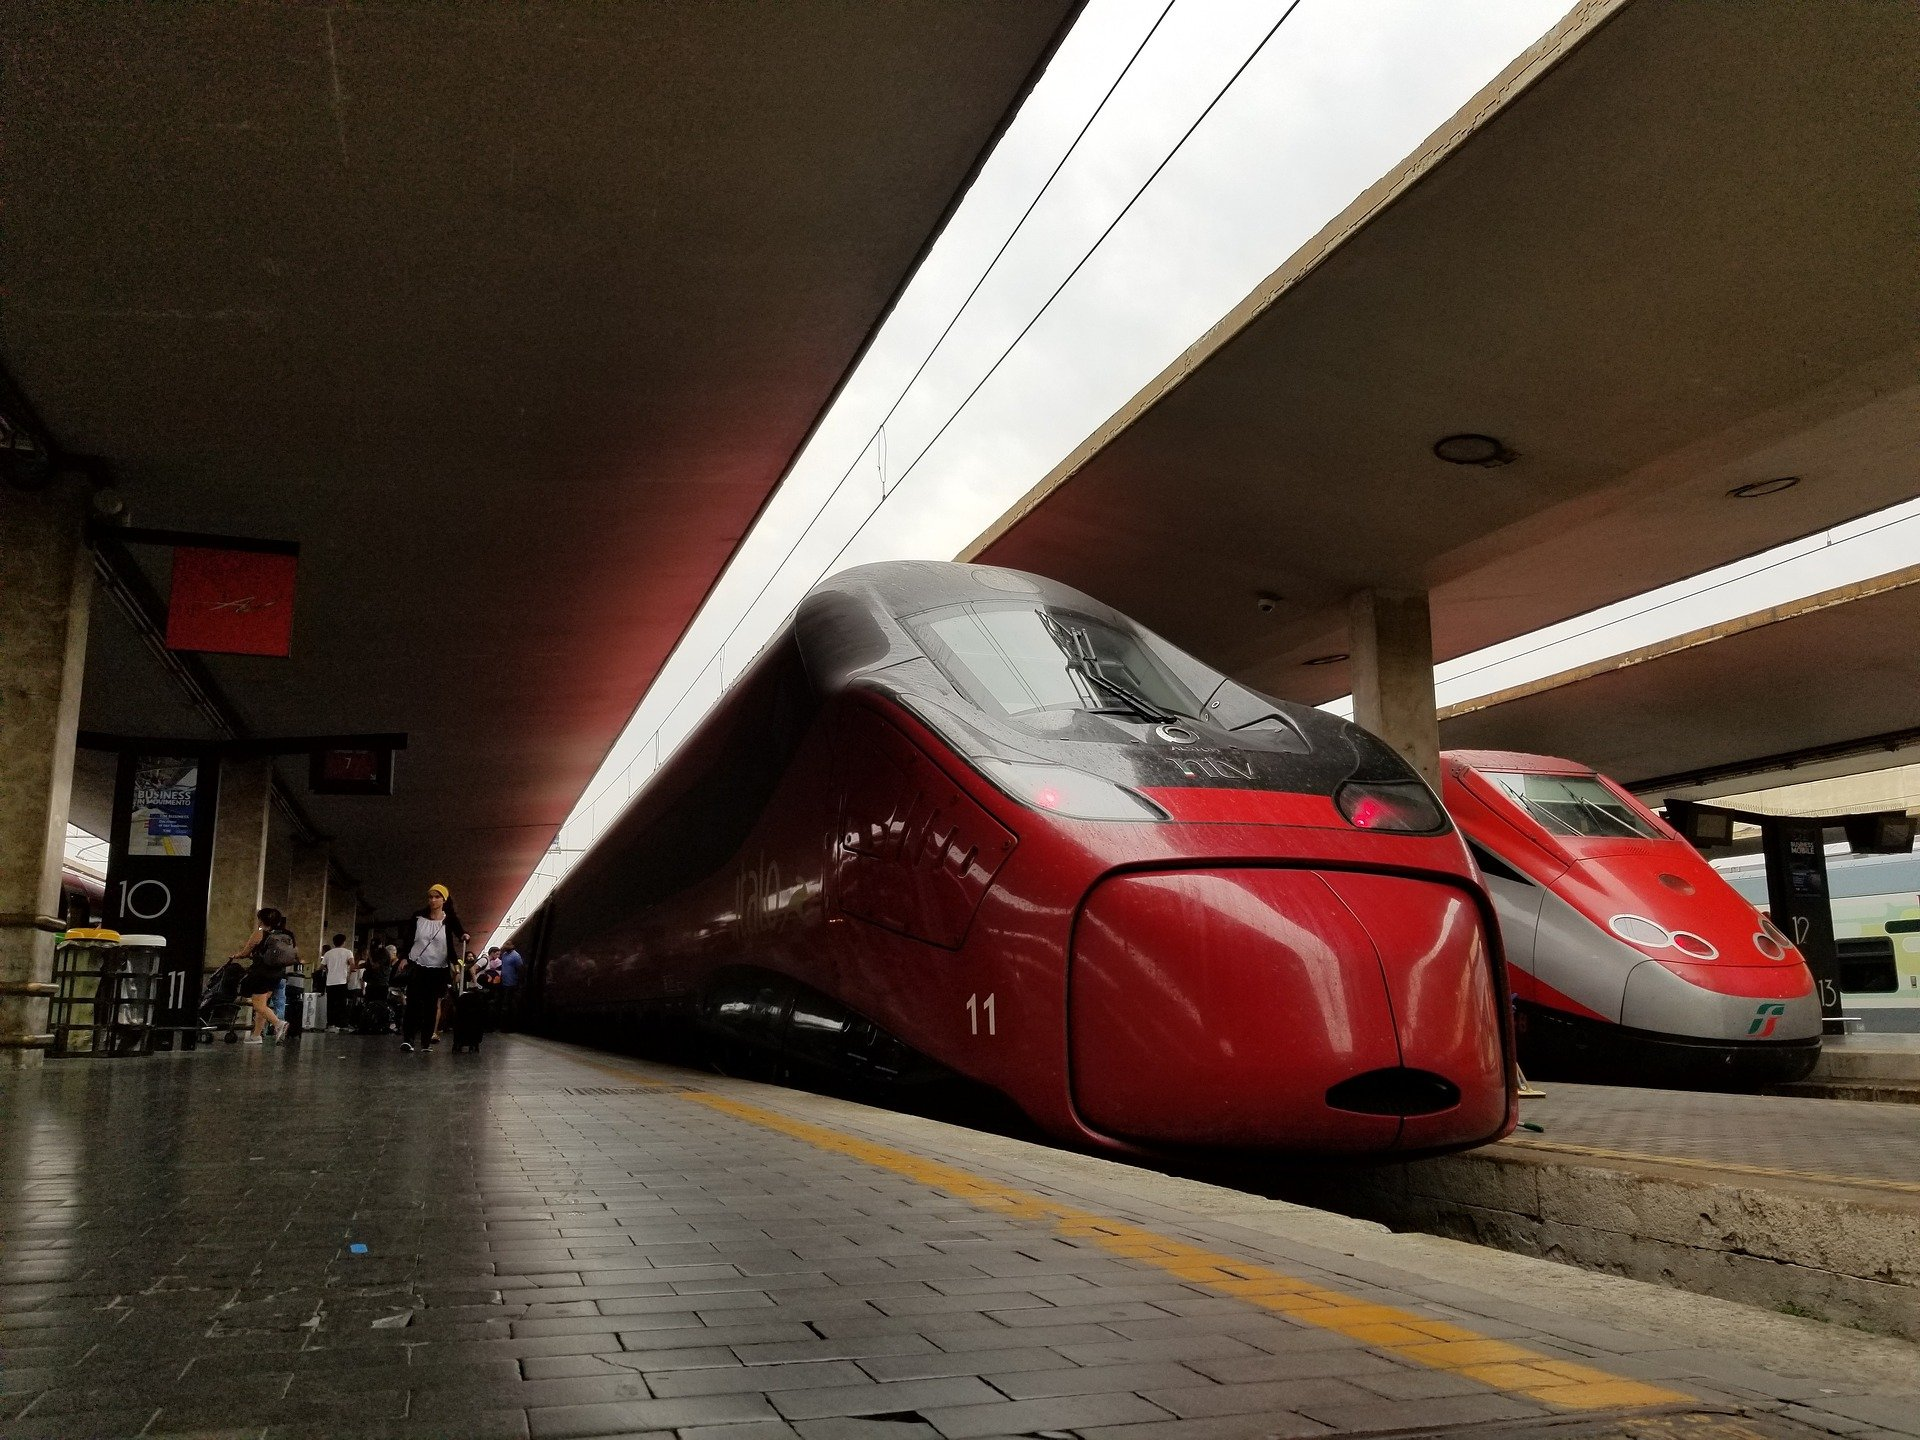 visit italy by train